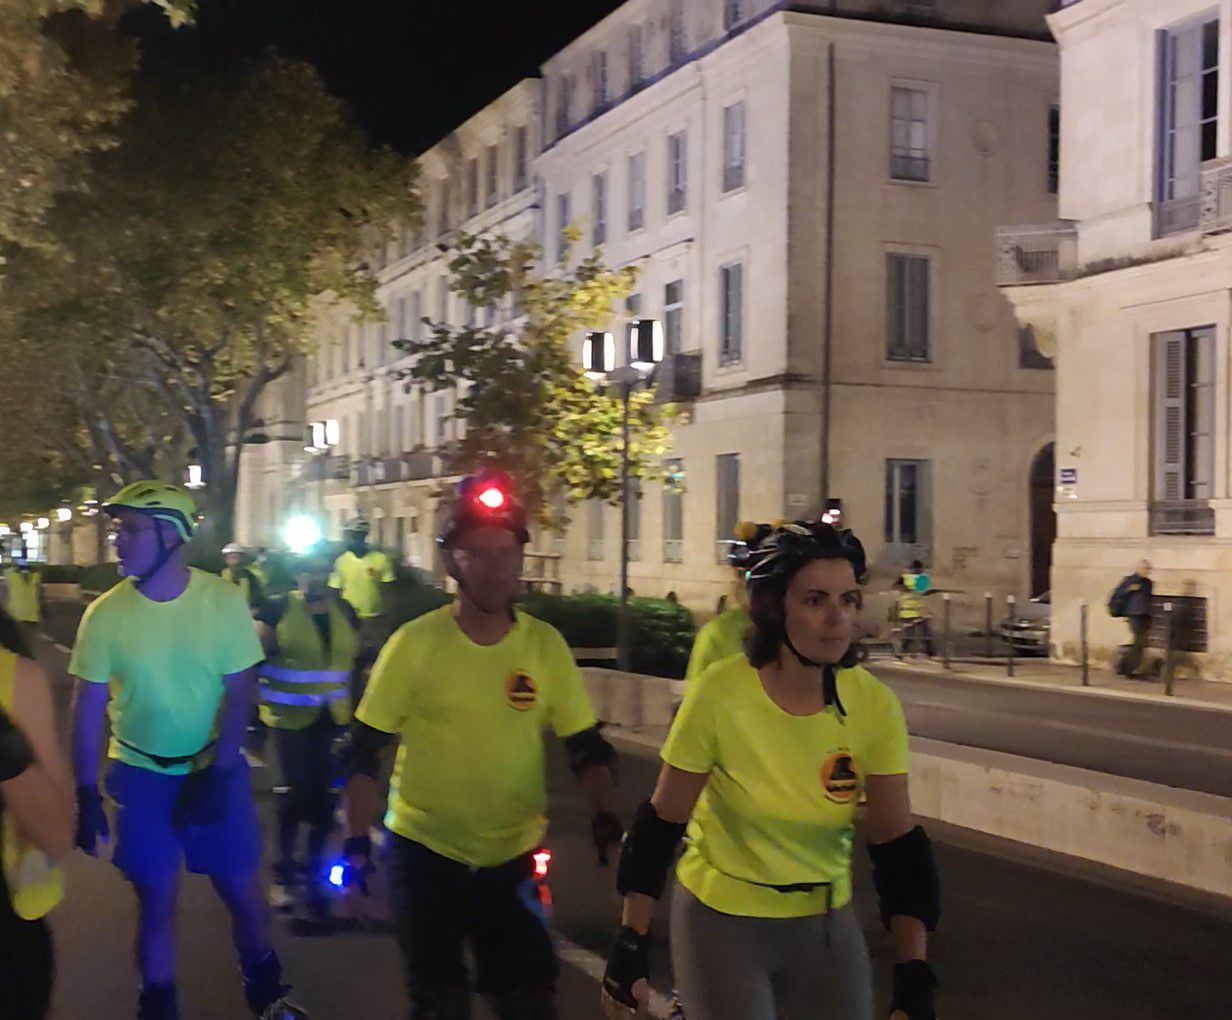 nimes, roller, rando, cours, stage, initiation, club, sport, patinage